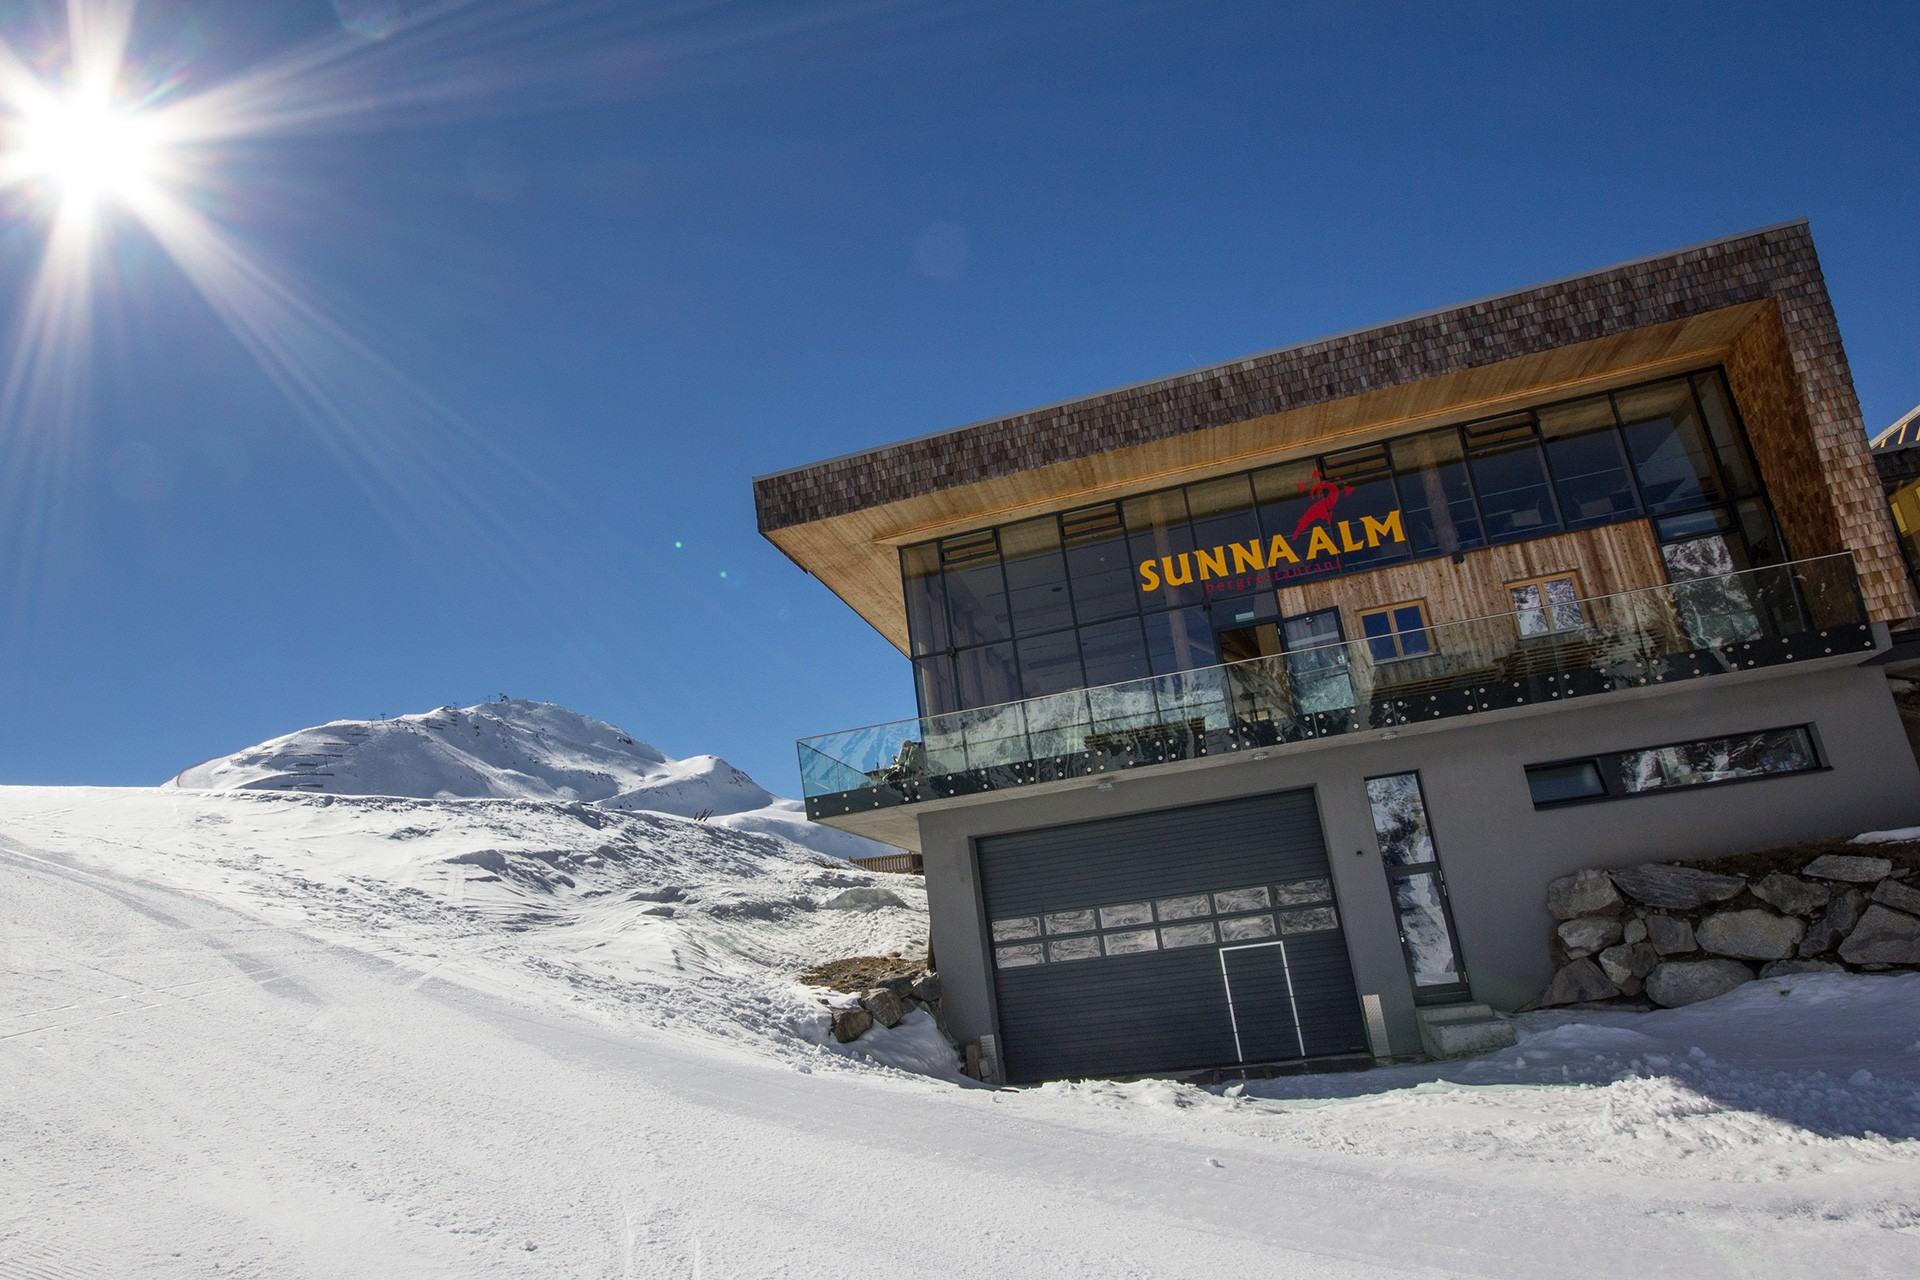 Rifflseebahn Top Staion and  Restaurant Sunna Alm